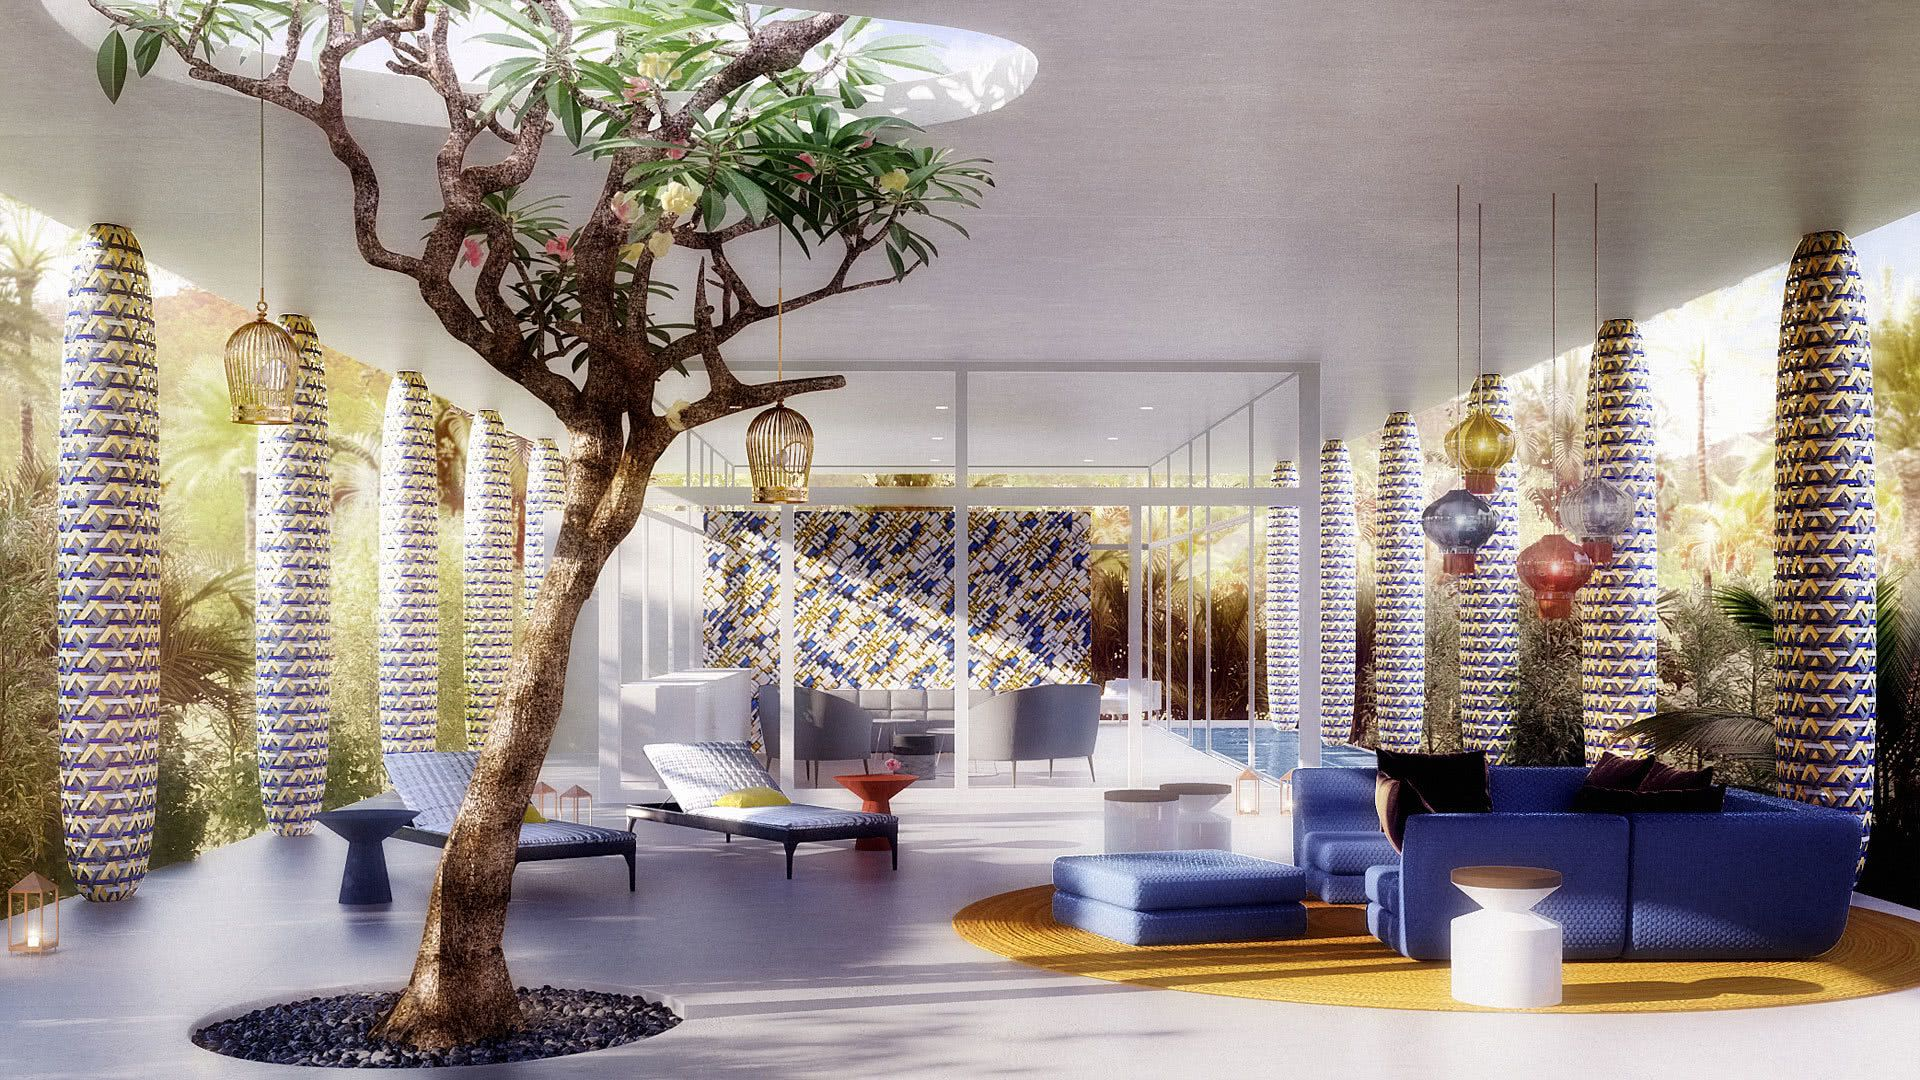 Marcel Wanders Is A Leading Product And Interior Design Studio